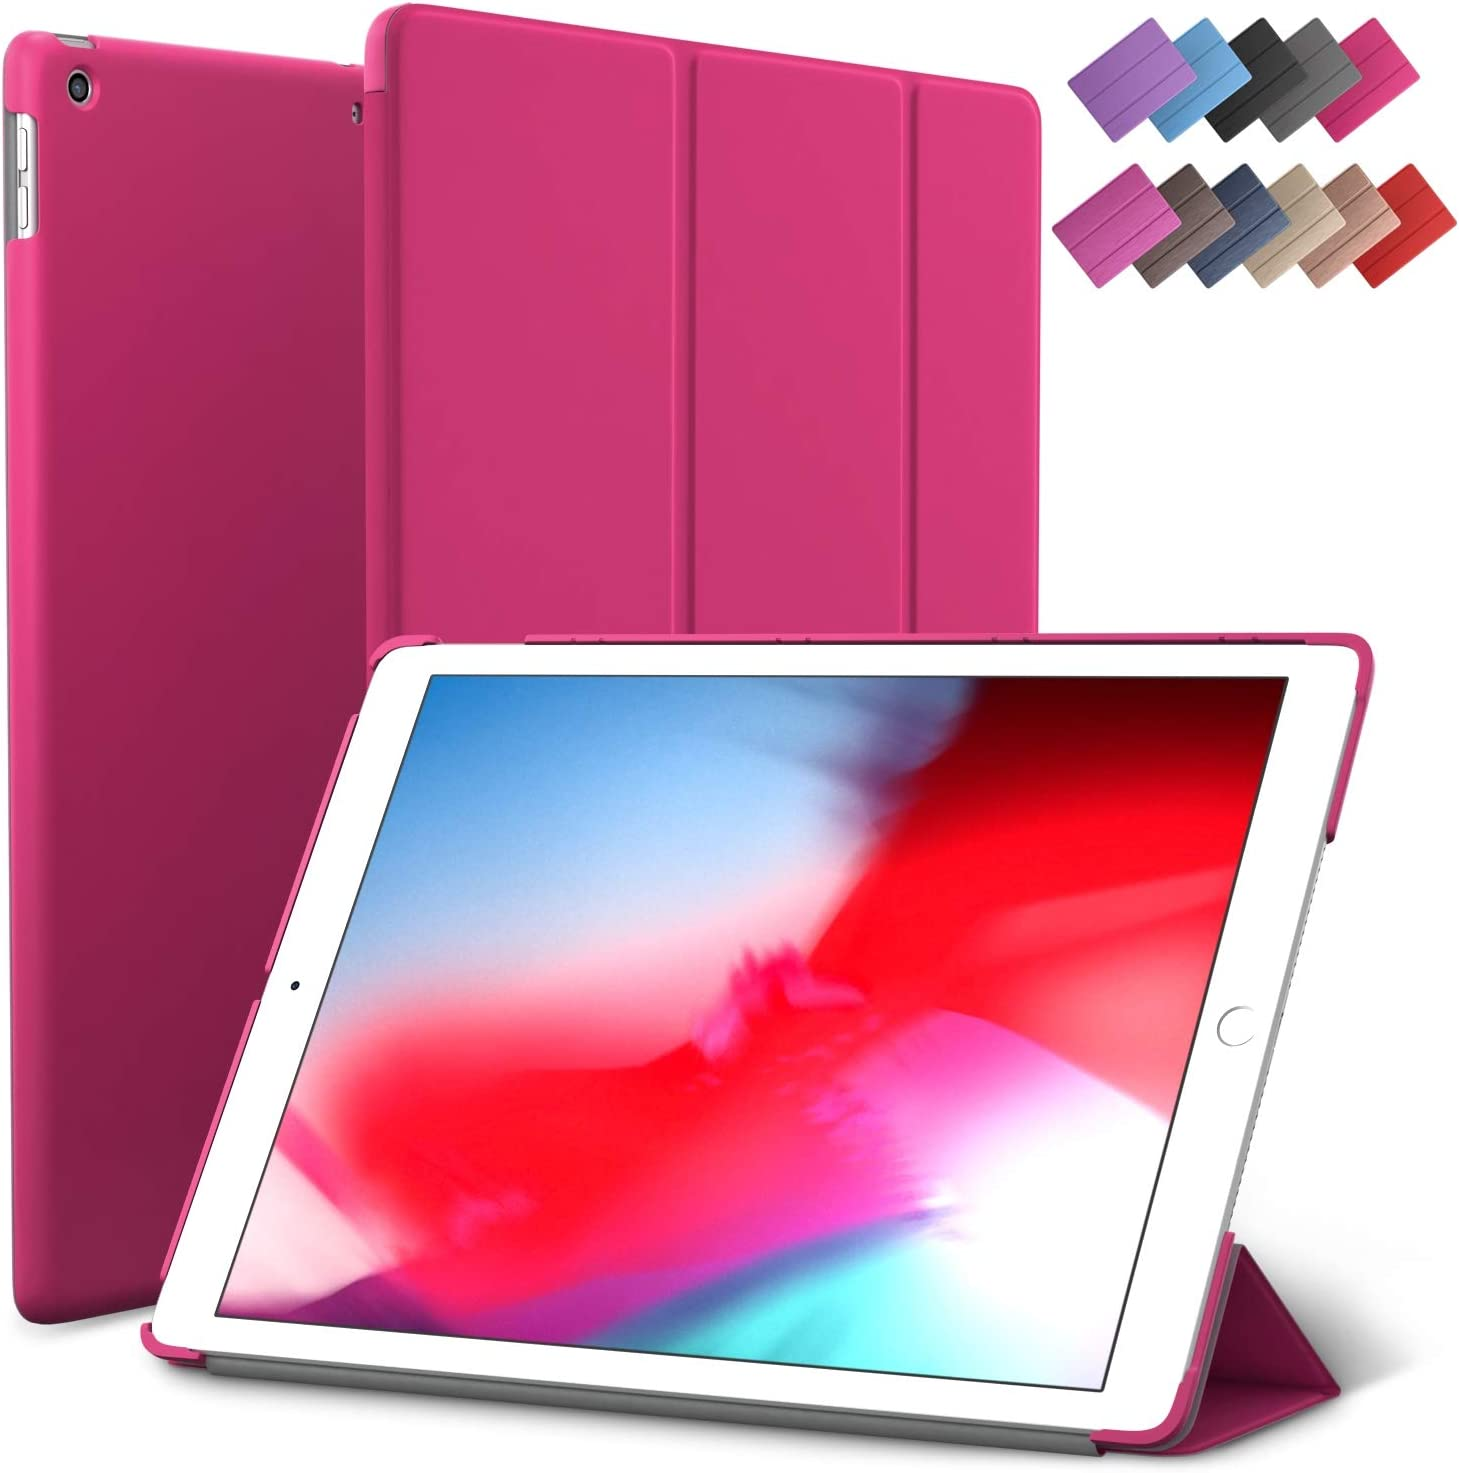 iPad Mini 5 case, ROARTZ Magenta Slim Fit Smart Rubber Coated Folio Case Hard Cover Light-Weight Wake/Sleep for Apple iPad Mini 5th Generation 2019 Model A2133 A2124 A2126 7.9-inch Display